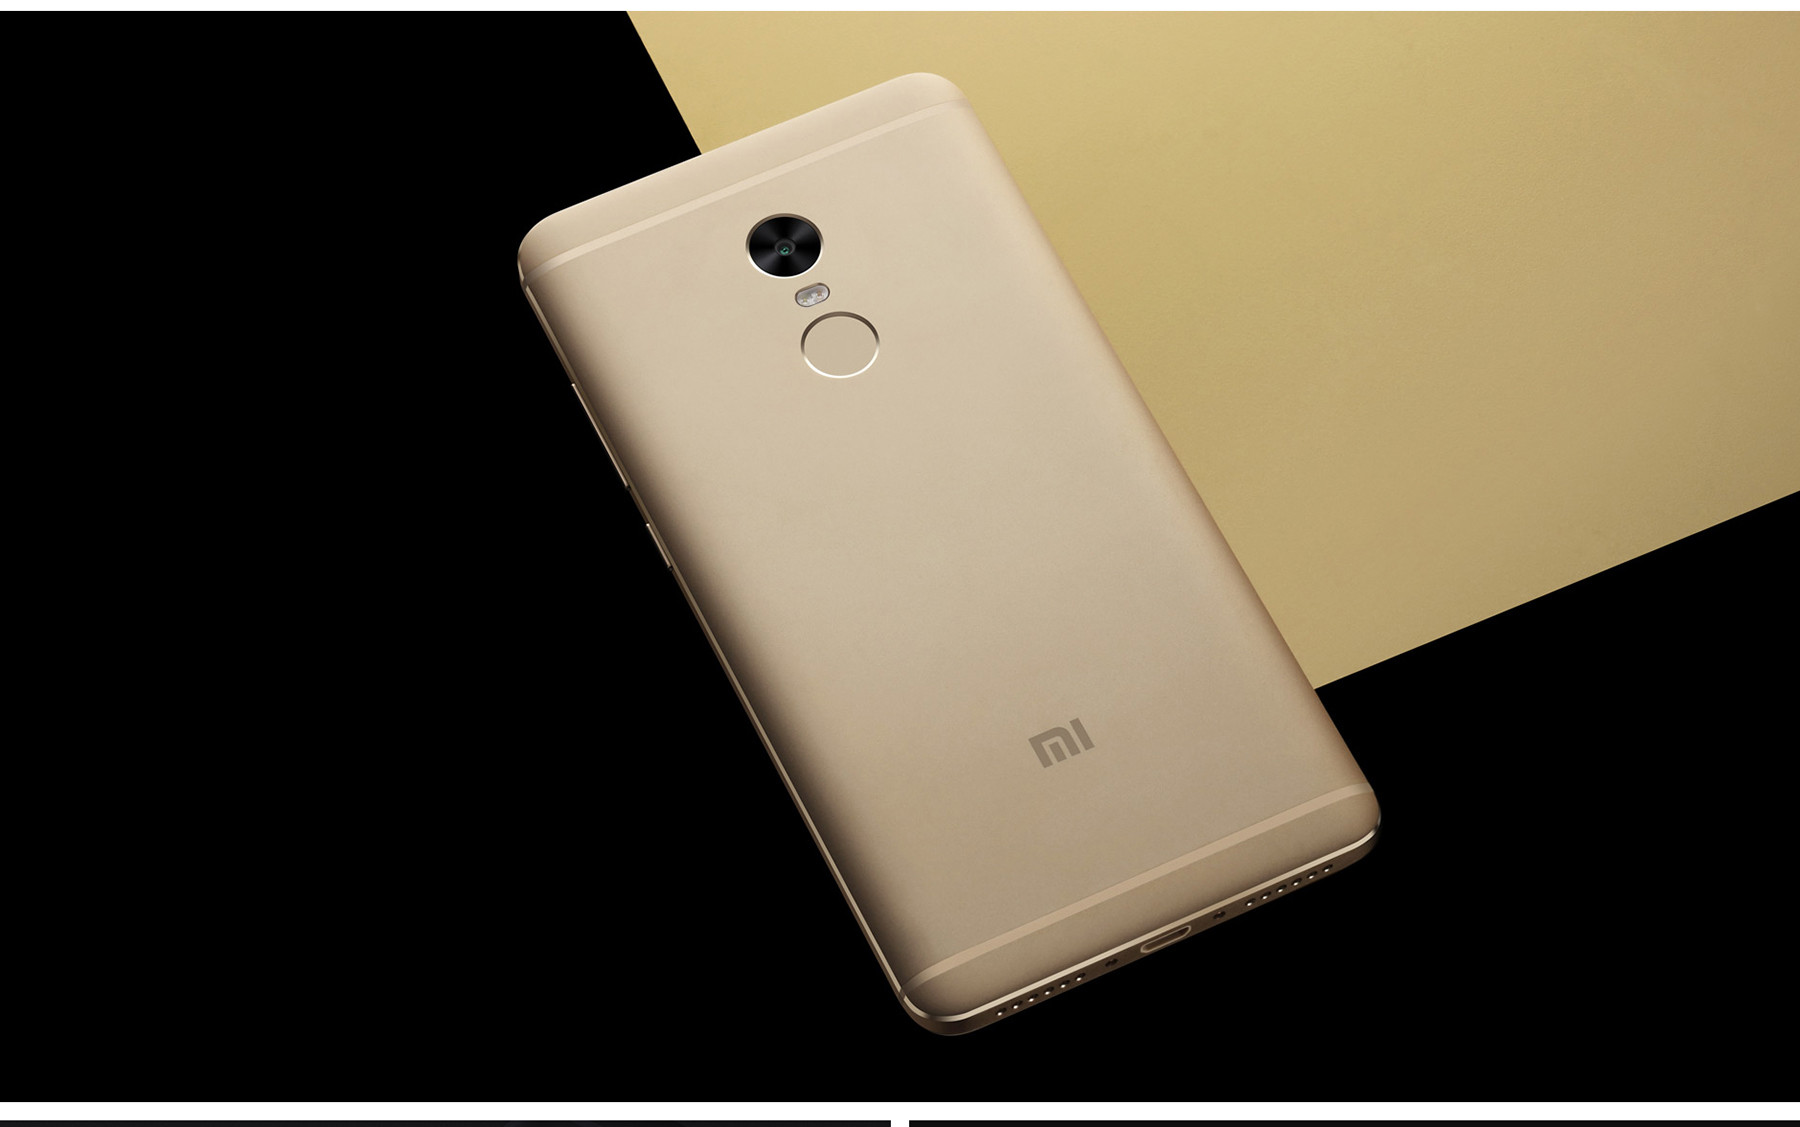 Xiaomi Redmi Note 4 MIUI 8 5.5 inch 4G Phablet Helio X20 2.1GHz Deca Core 3GB RAM 64GB ROM 2.5D Arc Screen Fingerprint Scanner 13.0MP Rear Camera